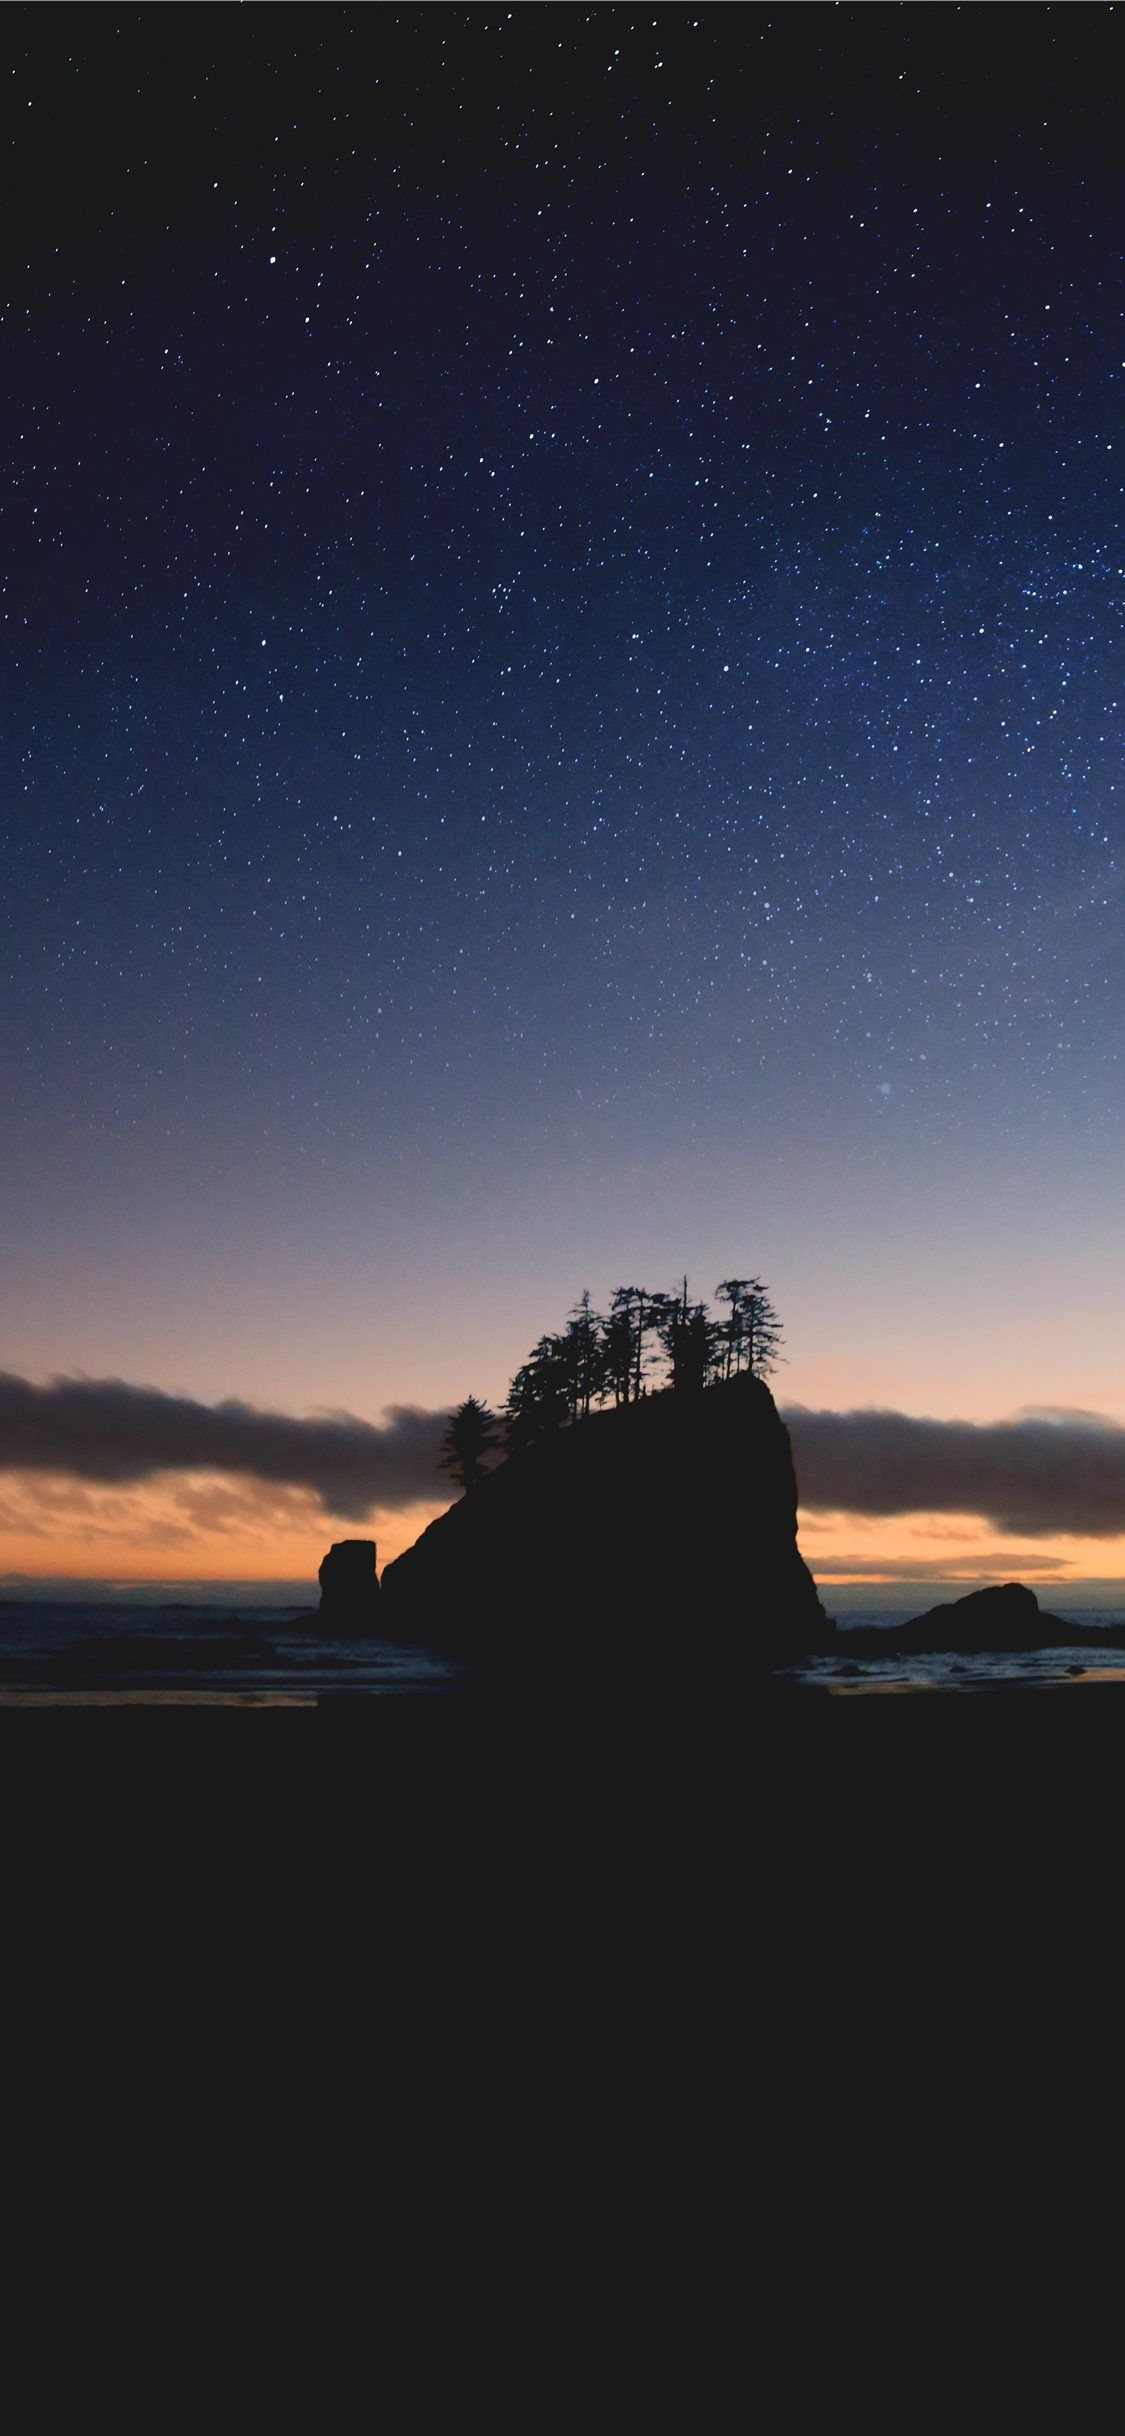 Silhouette Of Island Nature Space Sunset Stars Beach Usa Iphone Wallpaper Travel Amazing Hd Wallpapers Mobile Wallpaper